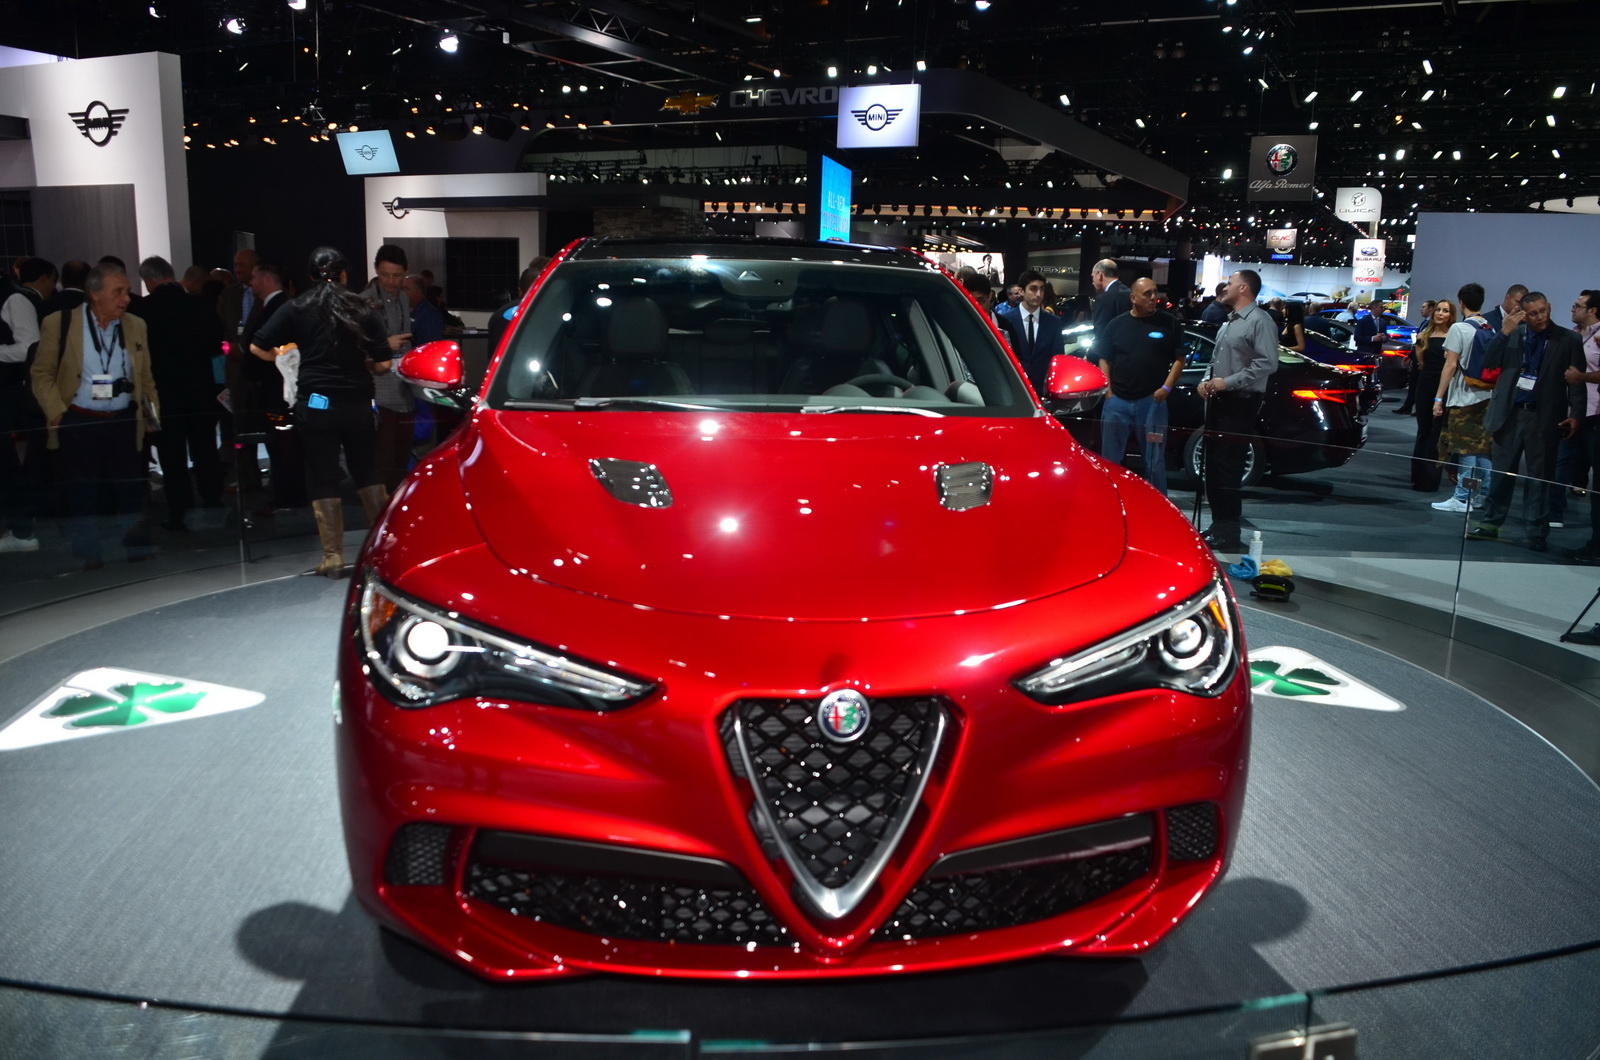 alfa romeo stelvio qv promises to be faster than a cayenne turbo s around the ring carscoops. Black Bedroom Furniture Sets. Home Design Ideas